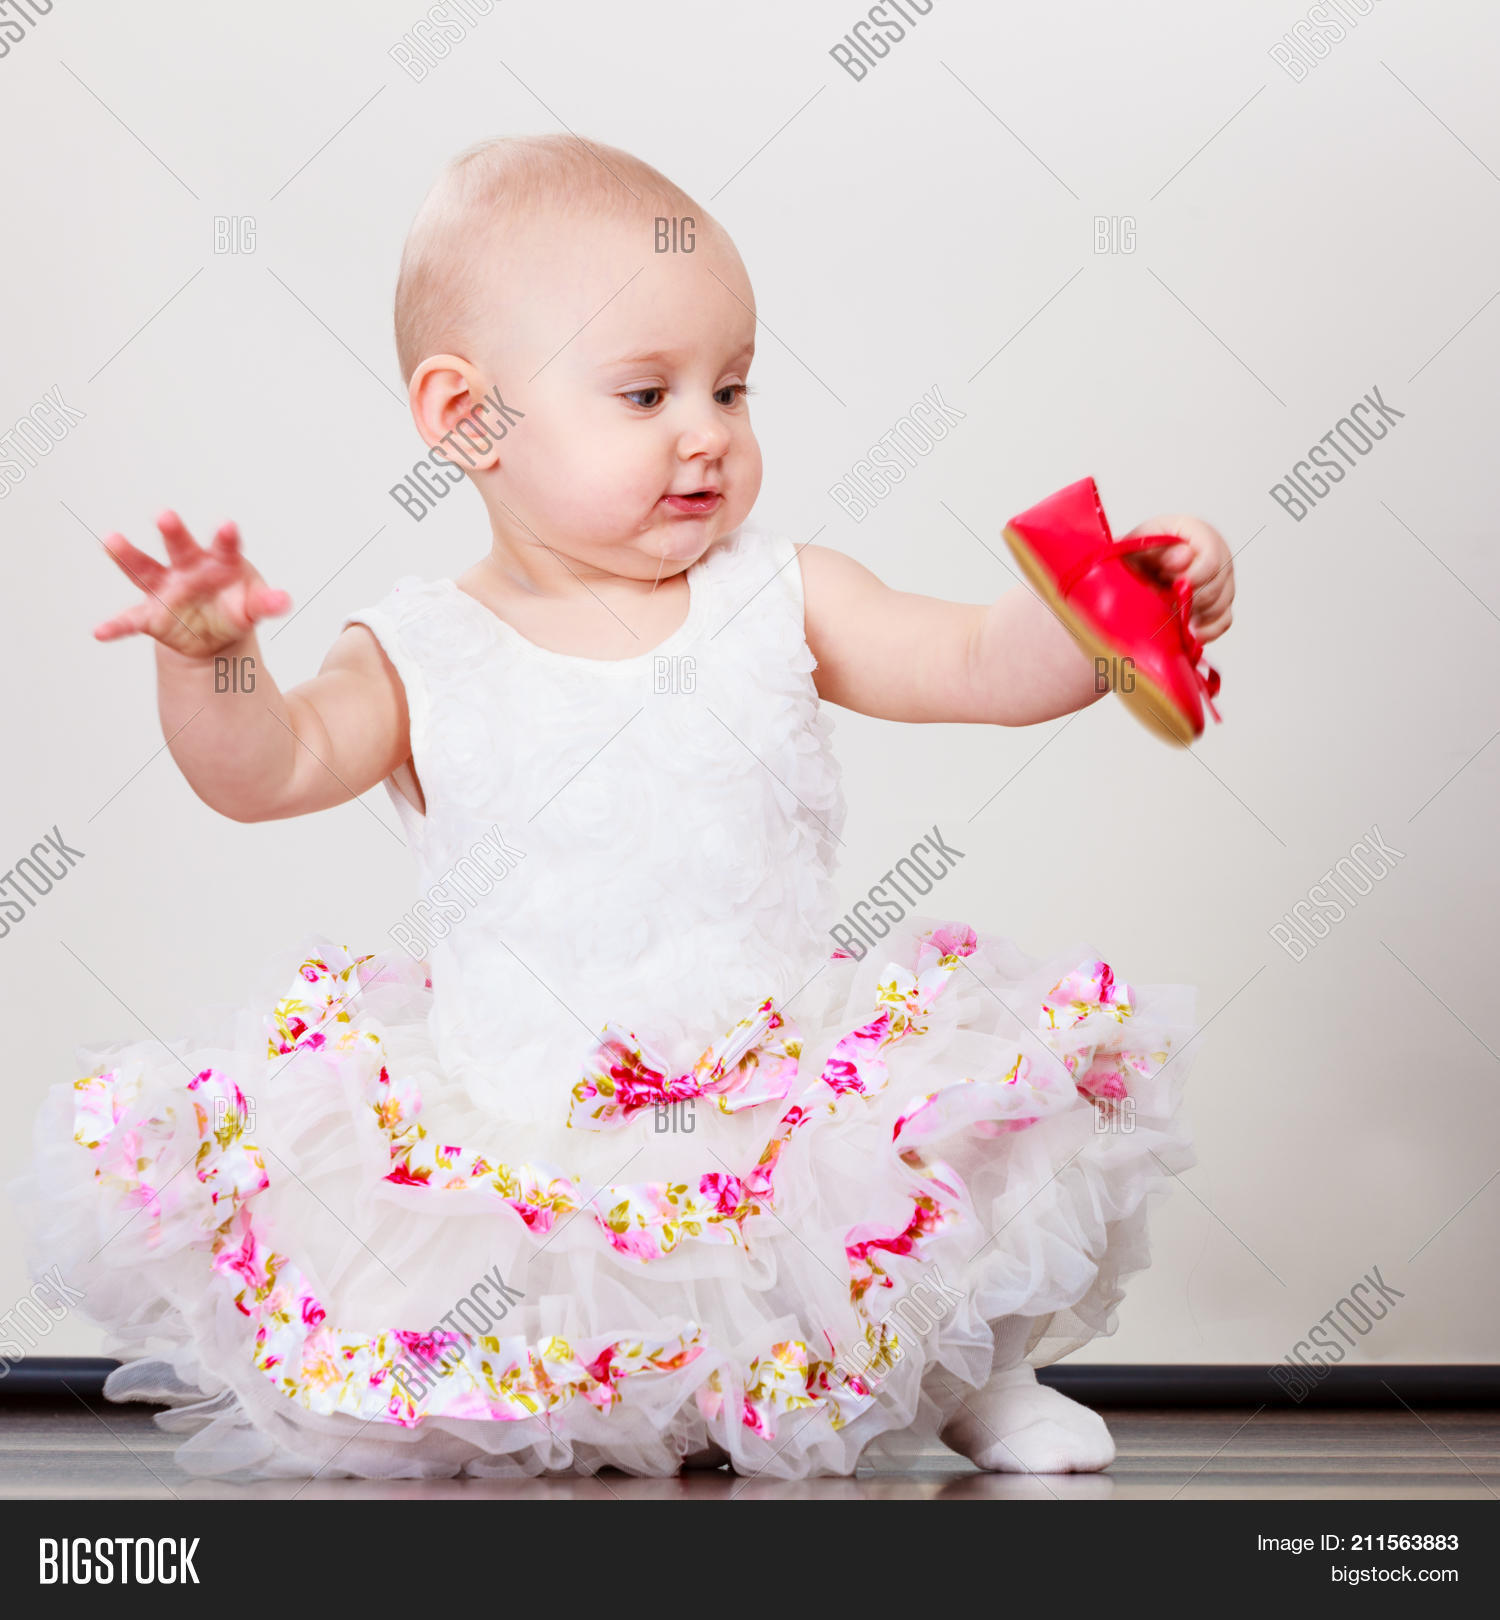 464b9226ea9f Lovely Little Child Image   Photo (Free Trial)